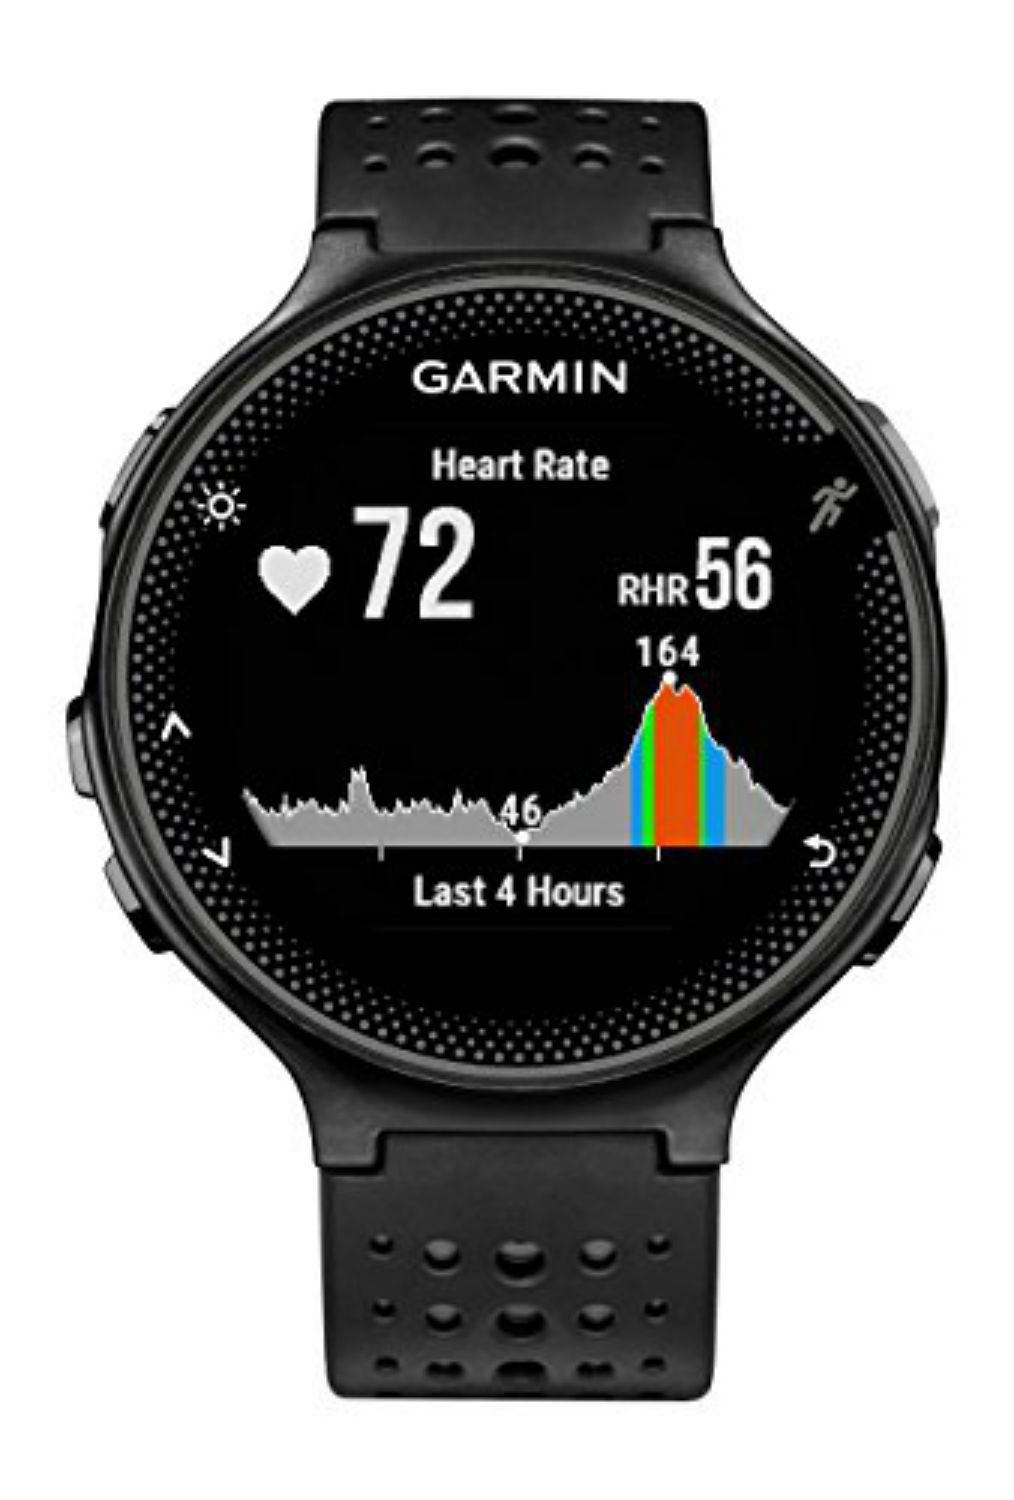 smartwatch amazonaws watch features best don even com production t the care review sport workout s if watches is samsung api about fitness alternative apple gear you